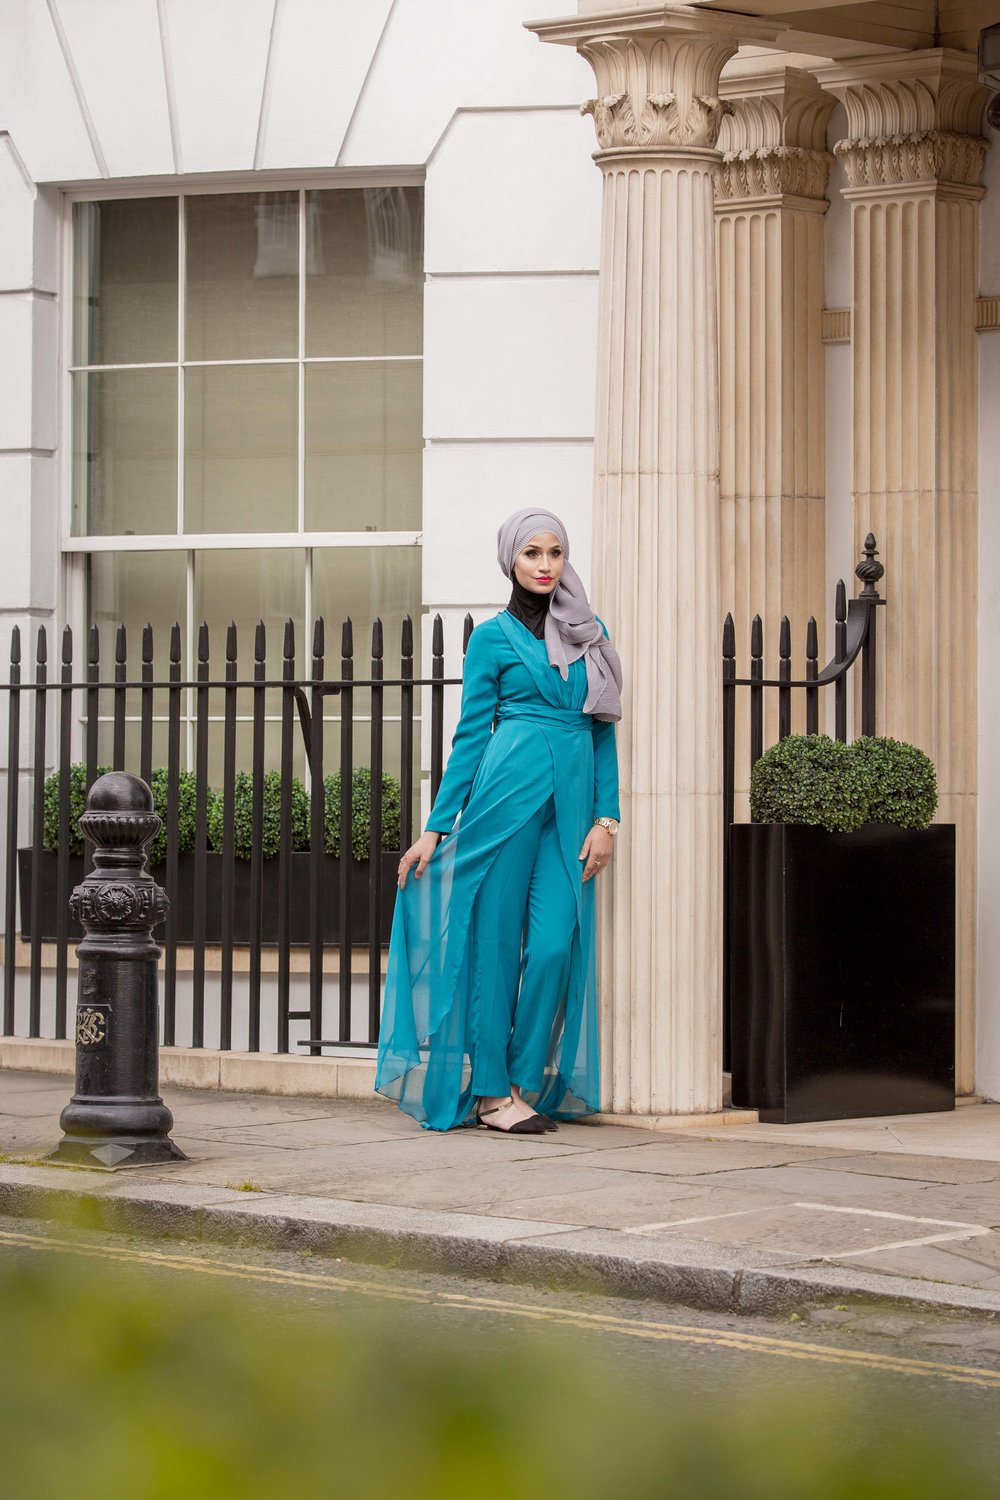 heute-elan-modest-street-aisha-rahman-fashion-photography-london-bristol-natalia-smith-photography-32.jpg